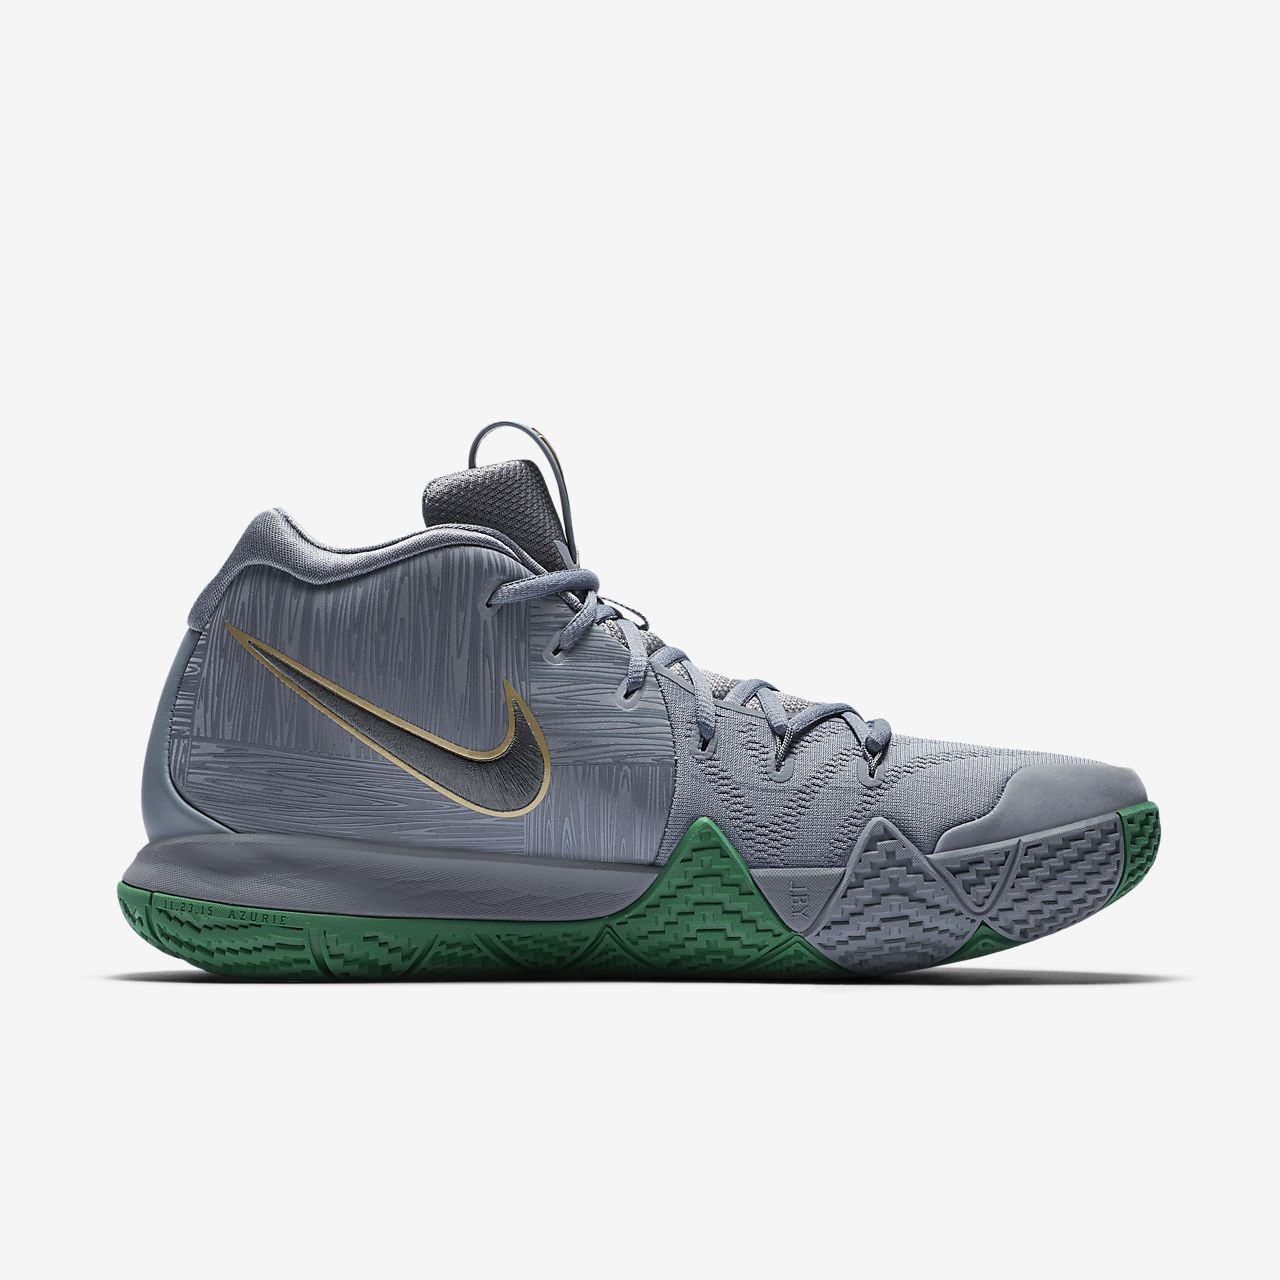 Nike Basketball Shoe Releases